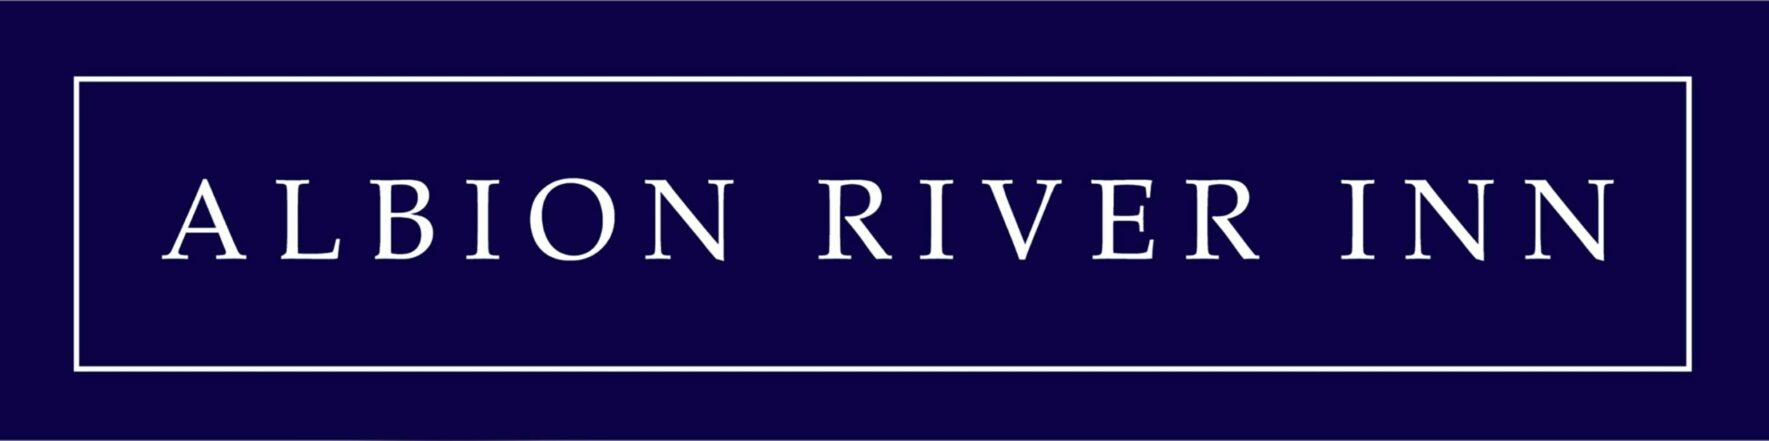 Contact Us, Albion River Inn